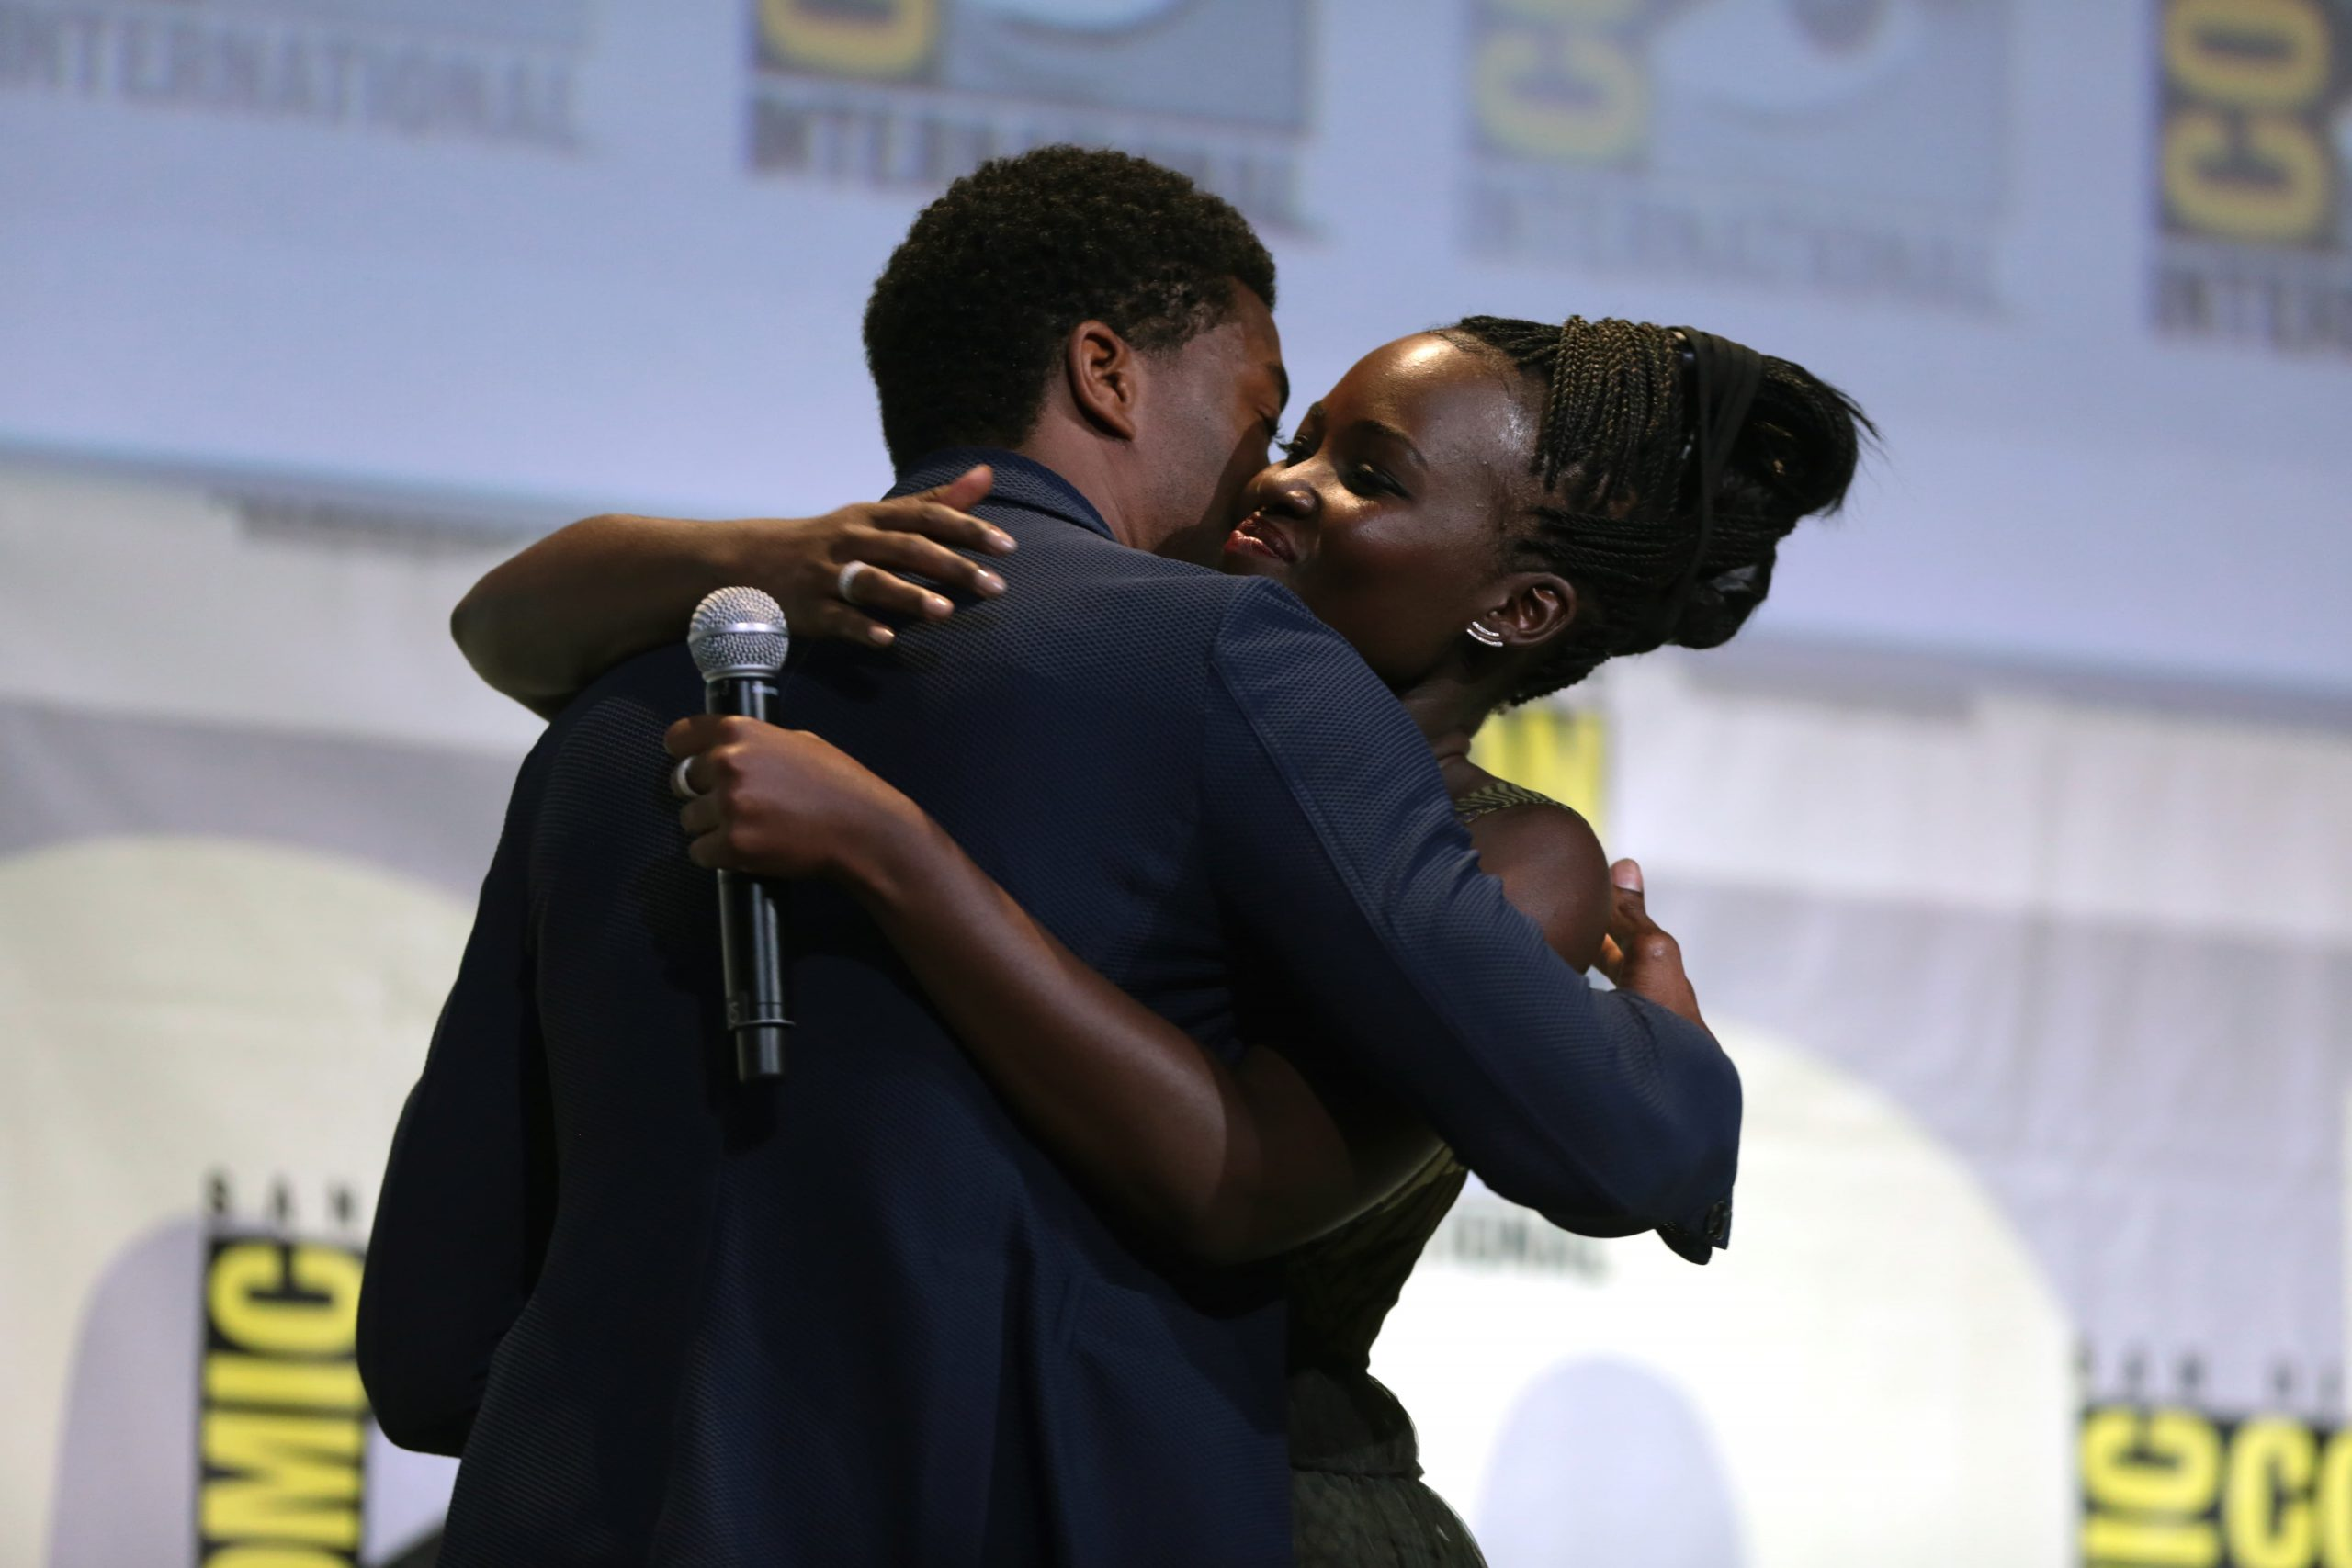 Lupita Nyong'o: For the beloved Chadwick Boseman #TakeYourTimeButDontWasteYourTime